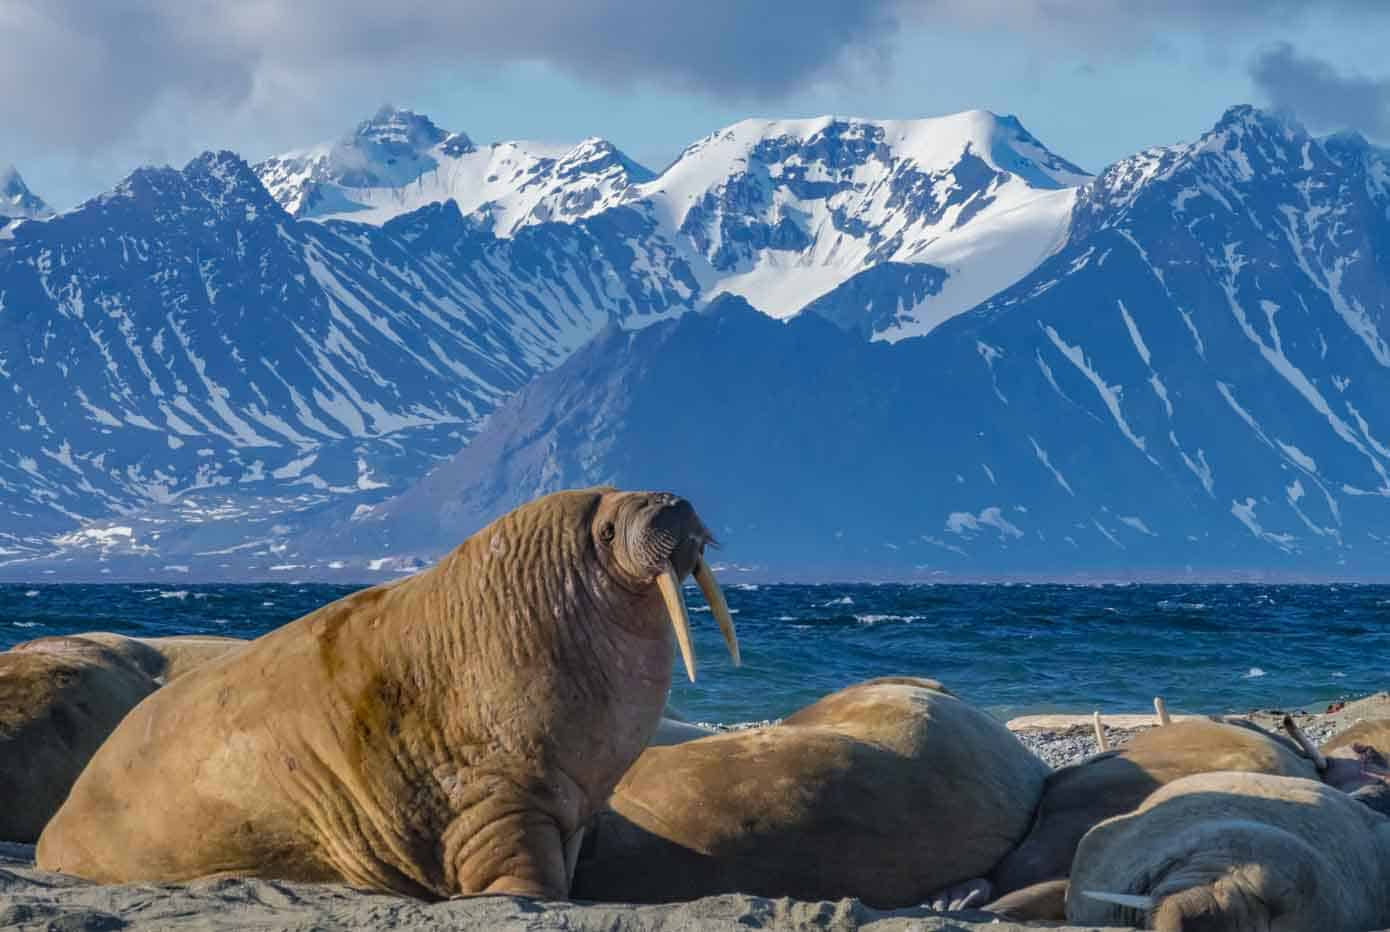 Walrus bull on a beach with ocean and mountains in the background in Svalbard.